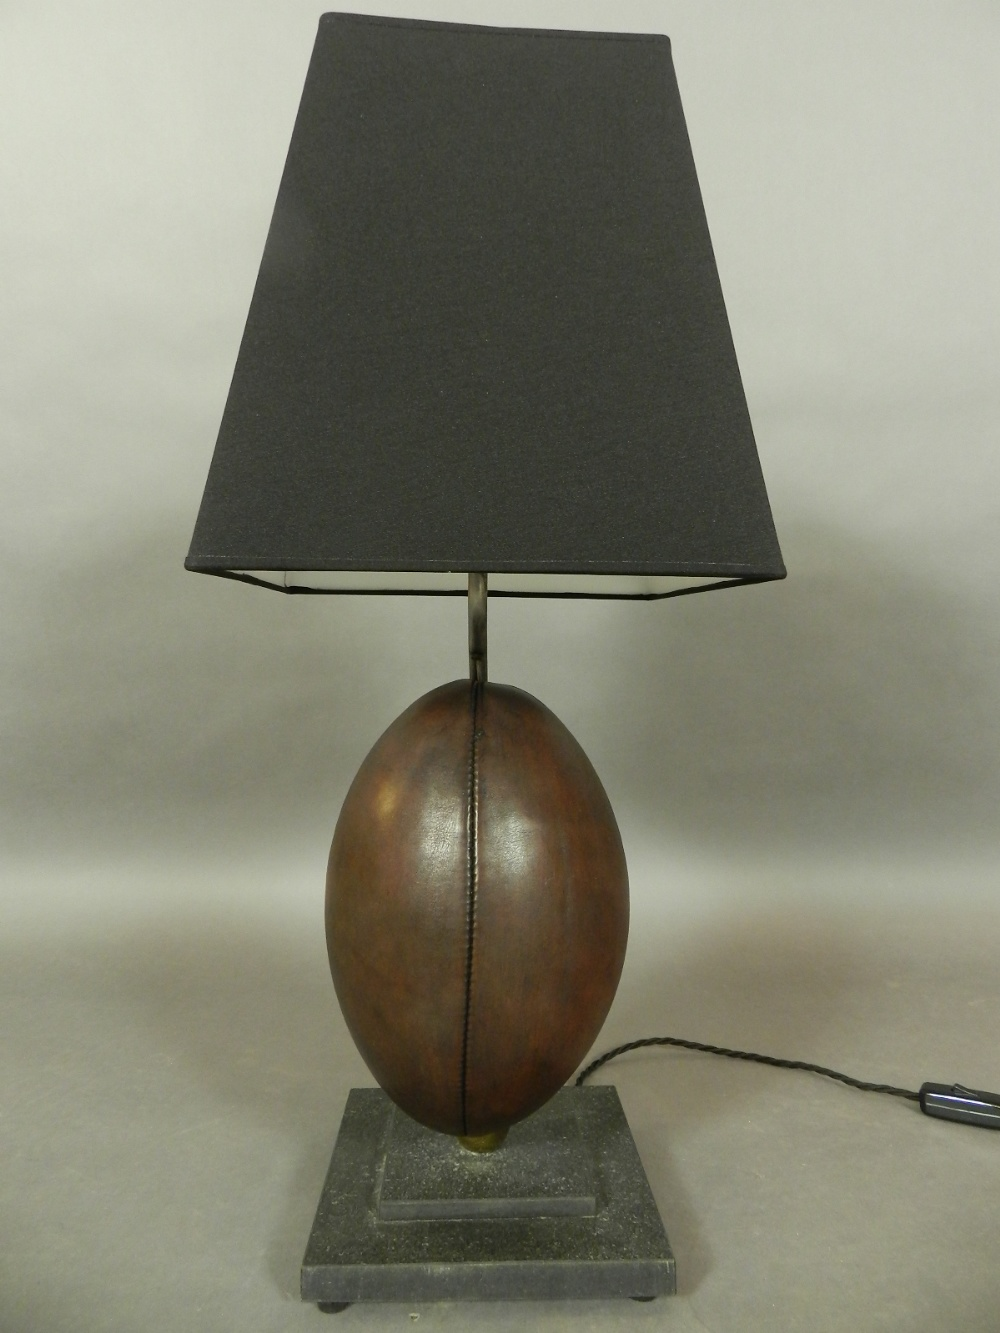 A table lamp, the base fashioned as a removable rugby ball